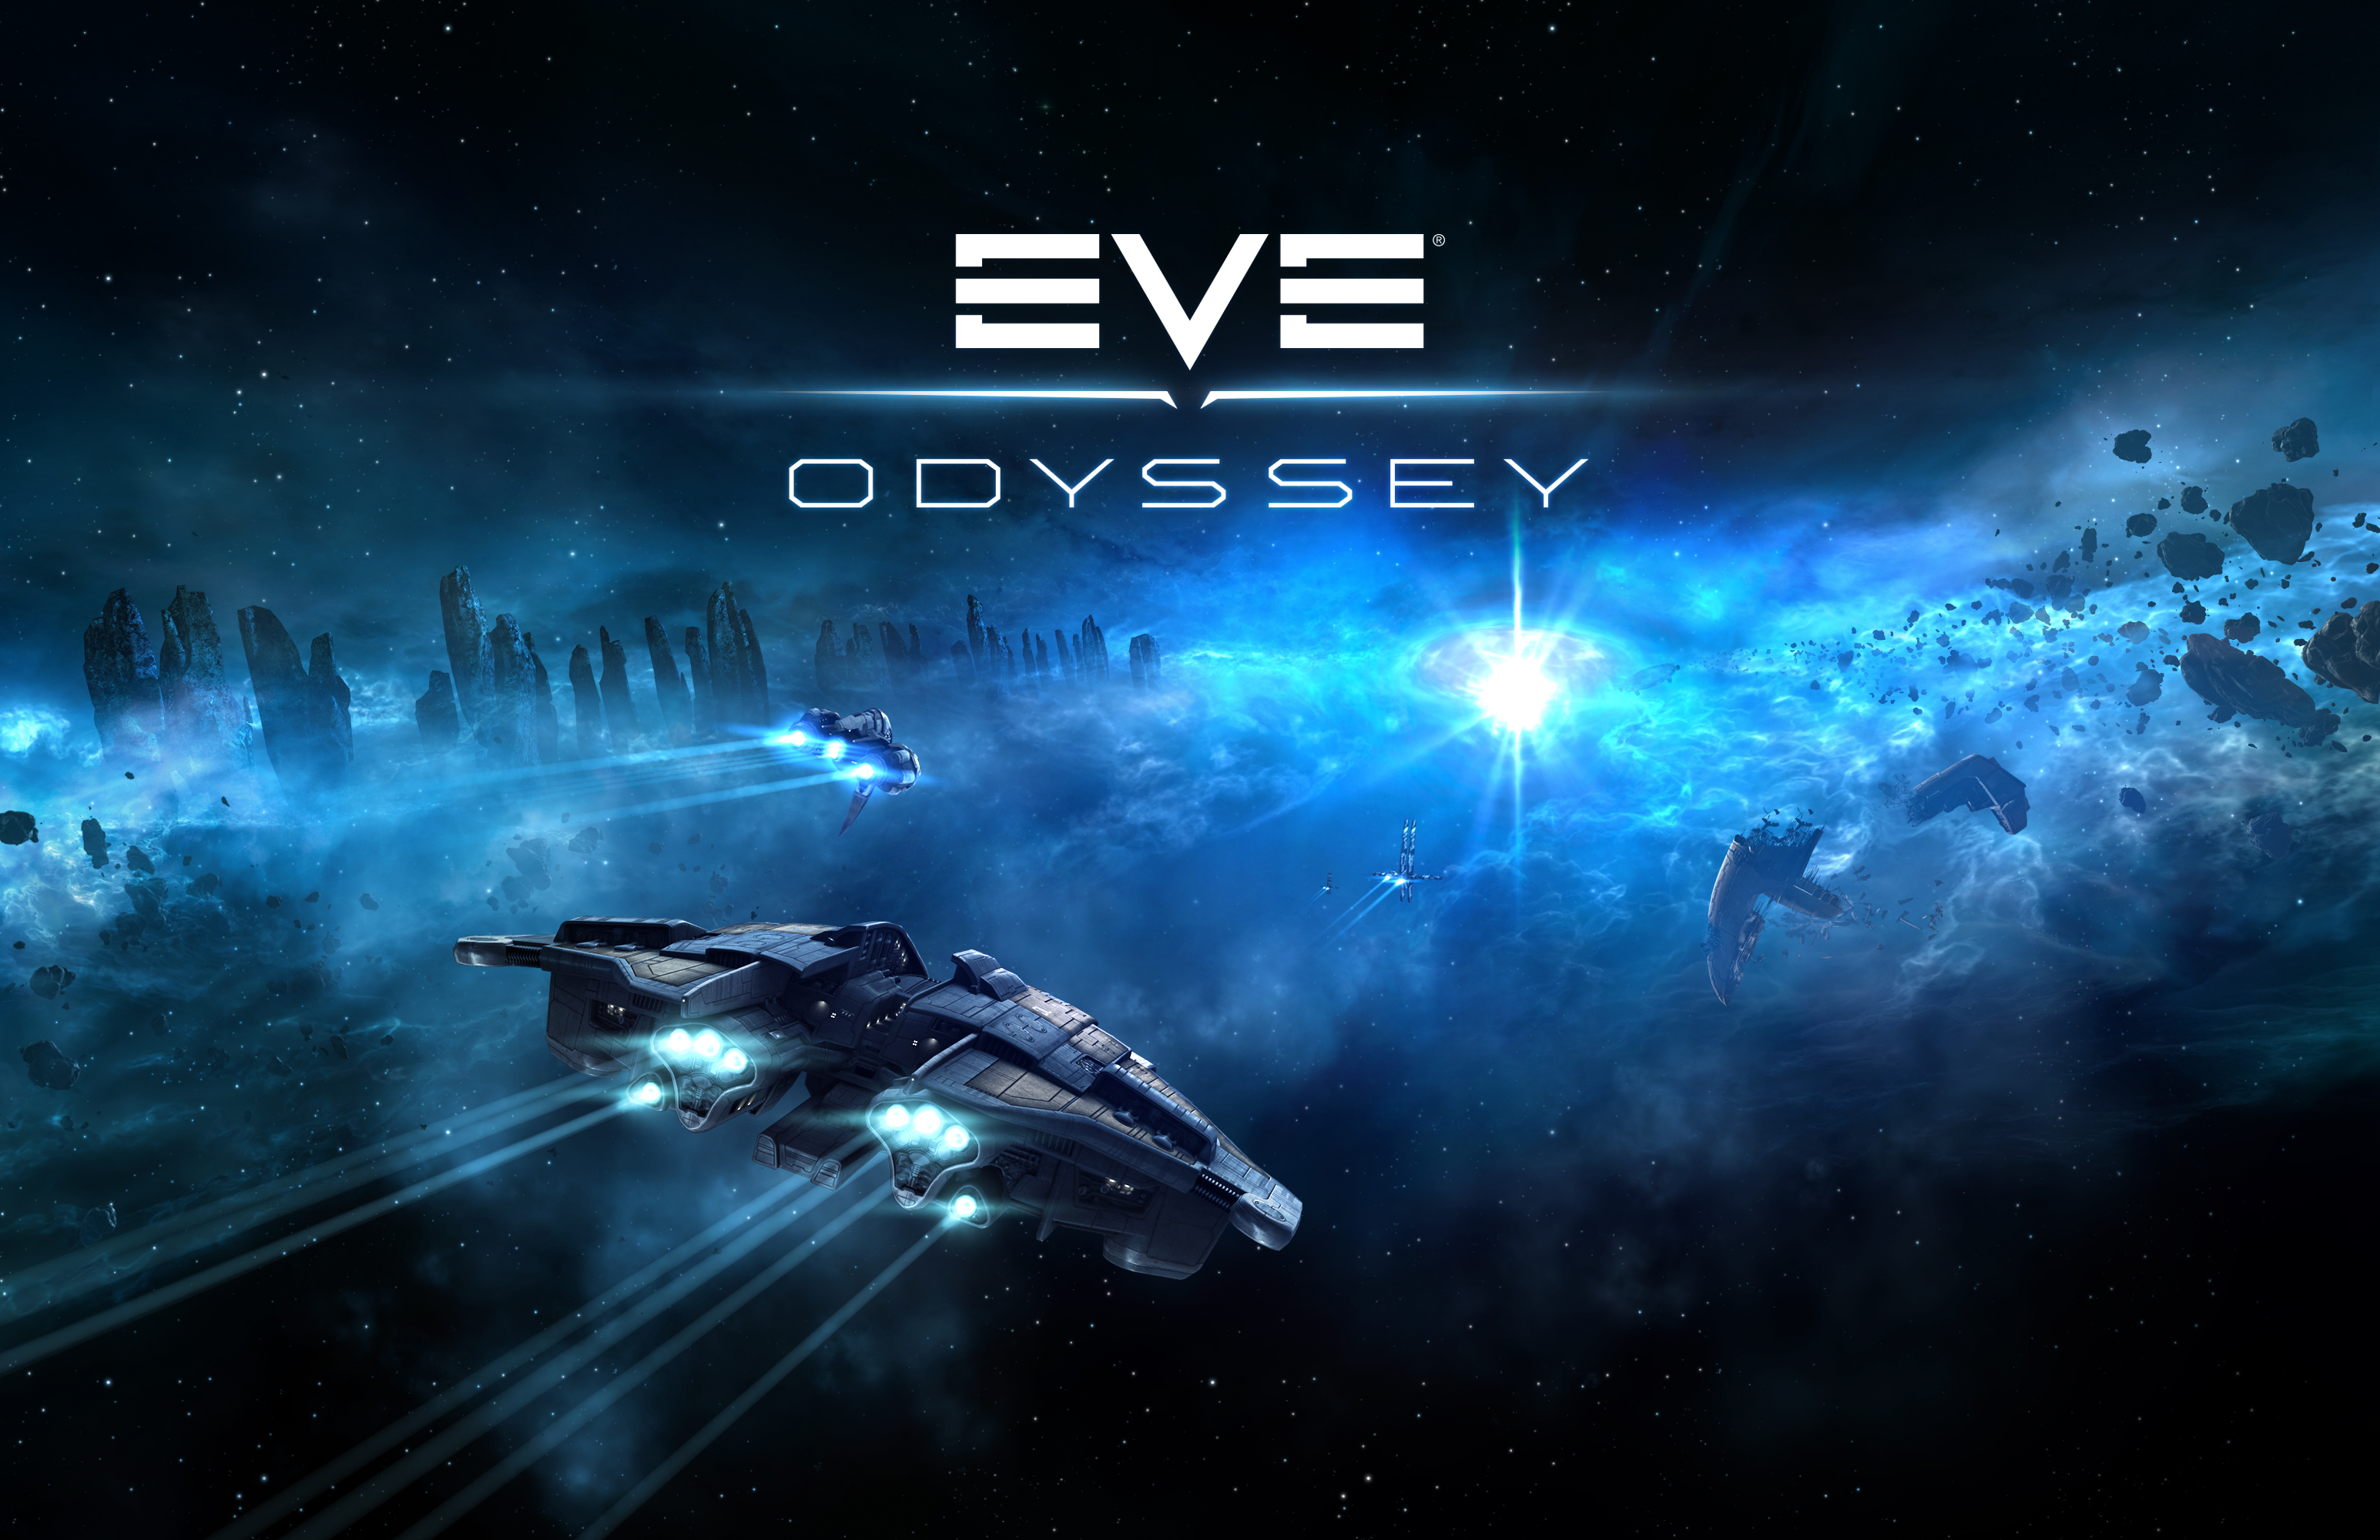 EVE Online: Odyssey - The 19th free expansion coming June